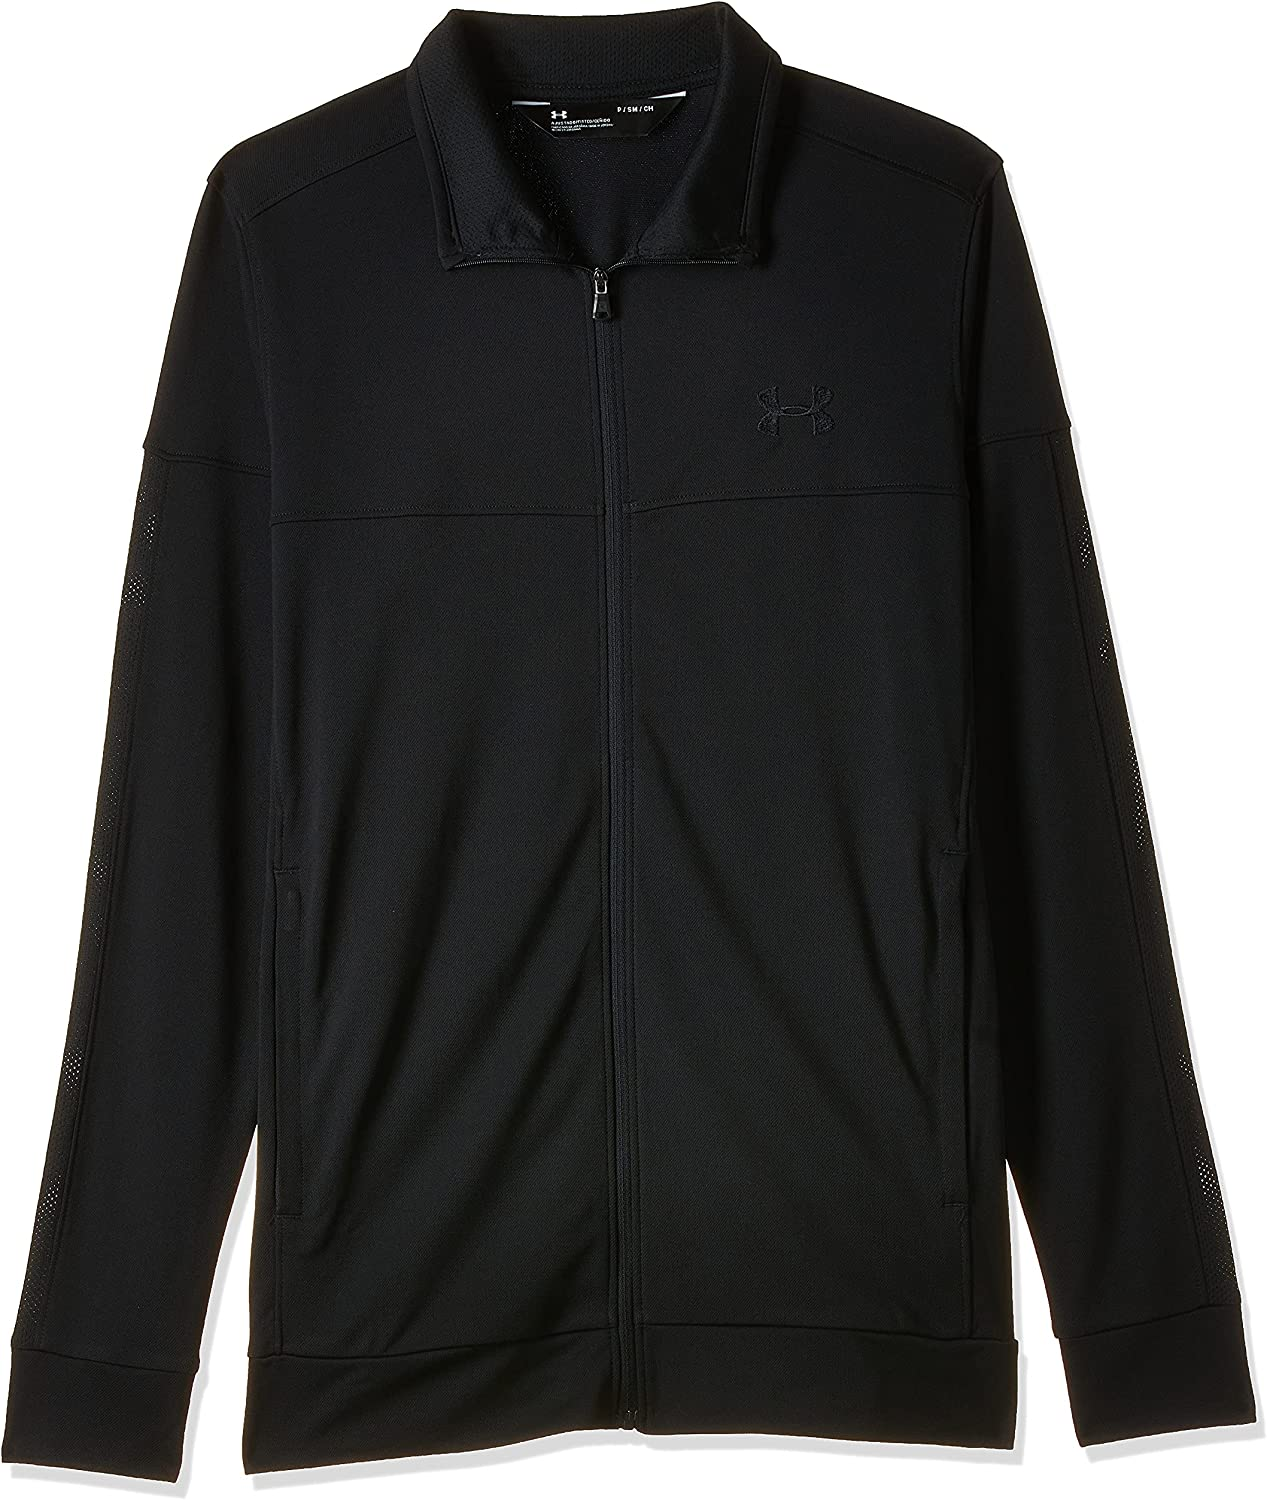 Under Armour Kansas City Mall Men's Pique Jacket All items free shipping Sportstyle